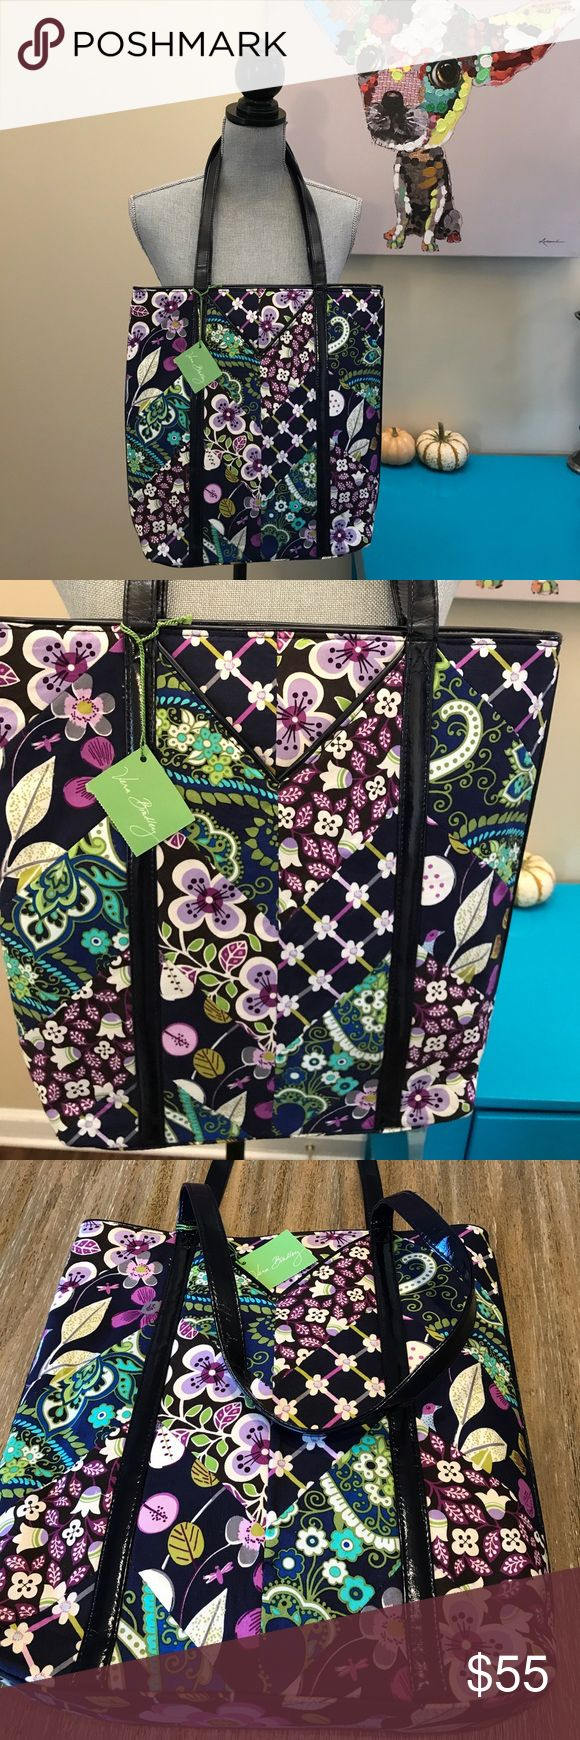 """Vera Bradley tote bag! Navy and purple patterned tote! NWT! Measurements: height 14""""Xlength 12"""" and depth is 3"""" and strap length is 11.5 Vera Bradley Bags Totes"""